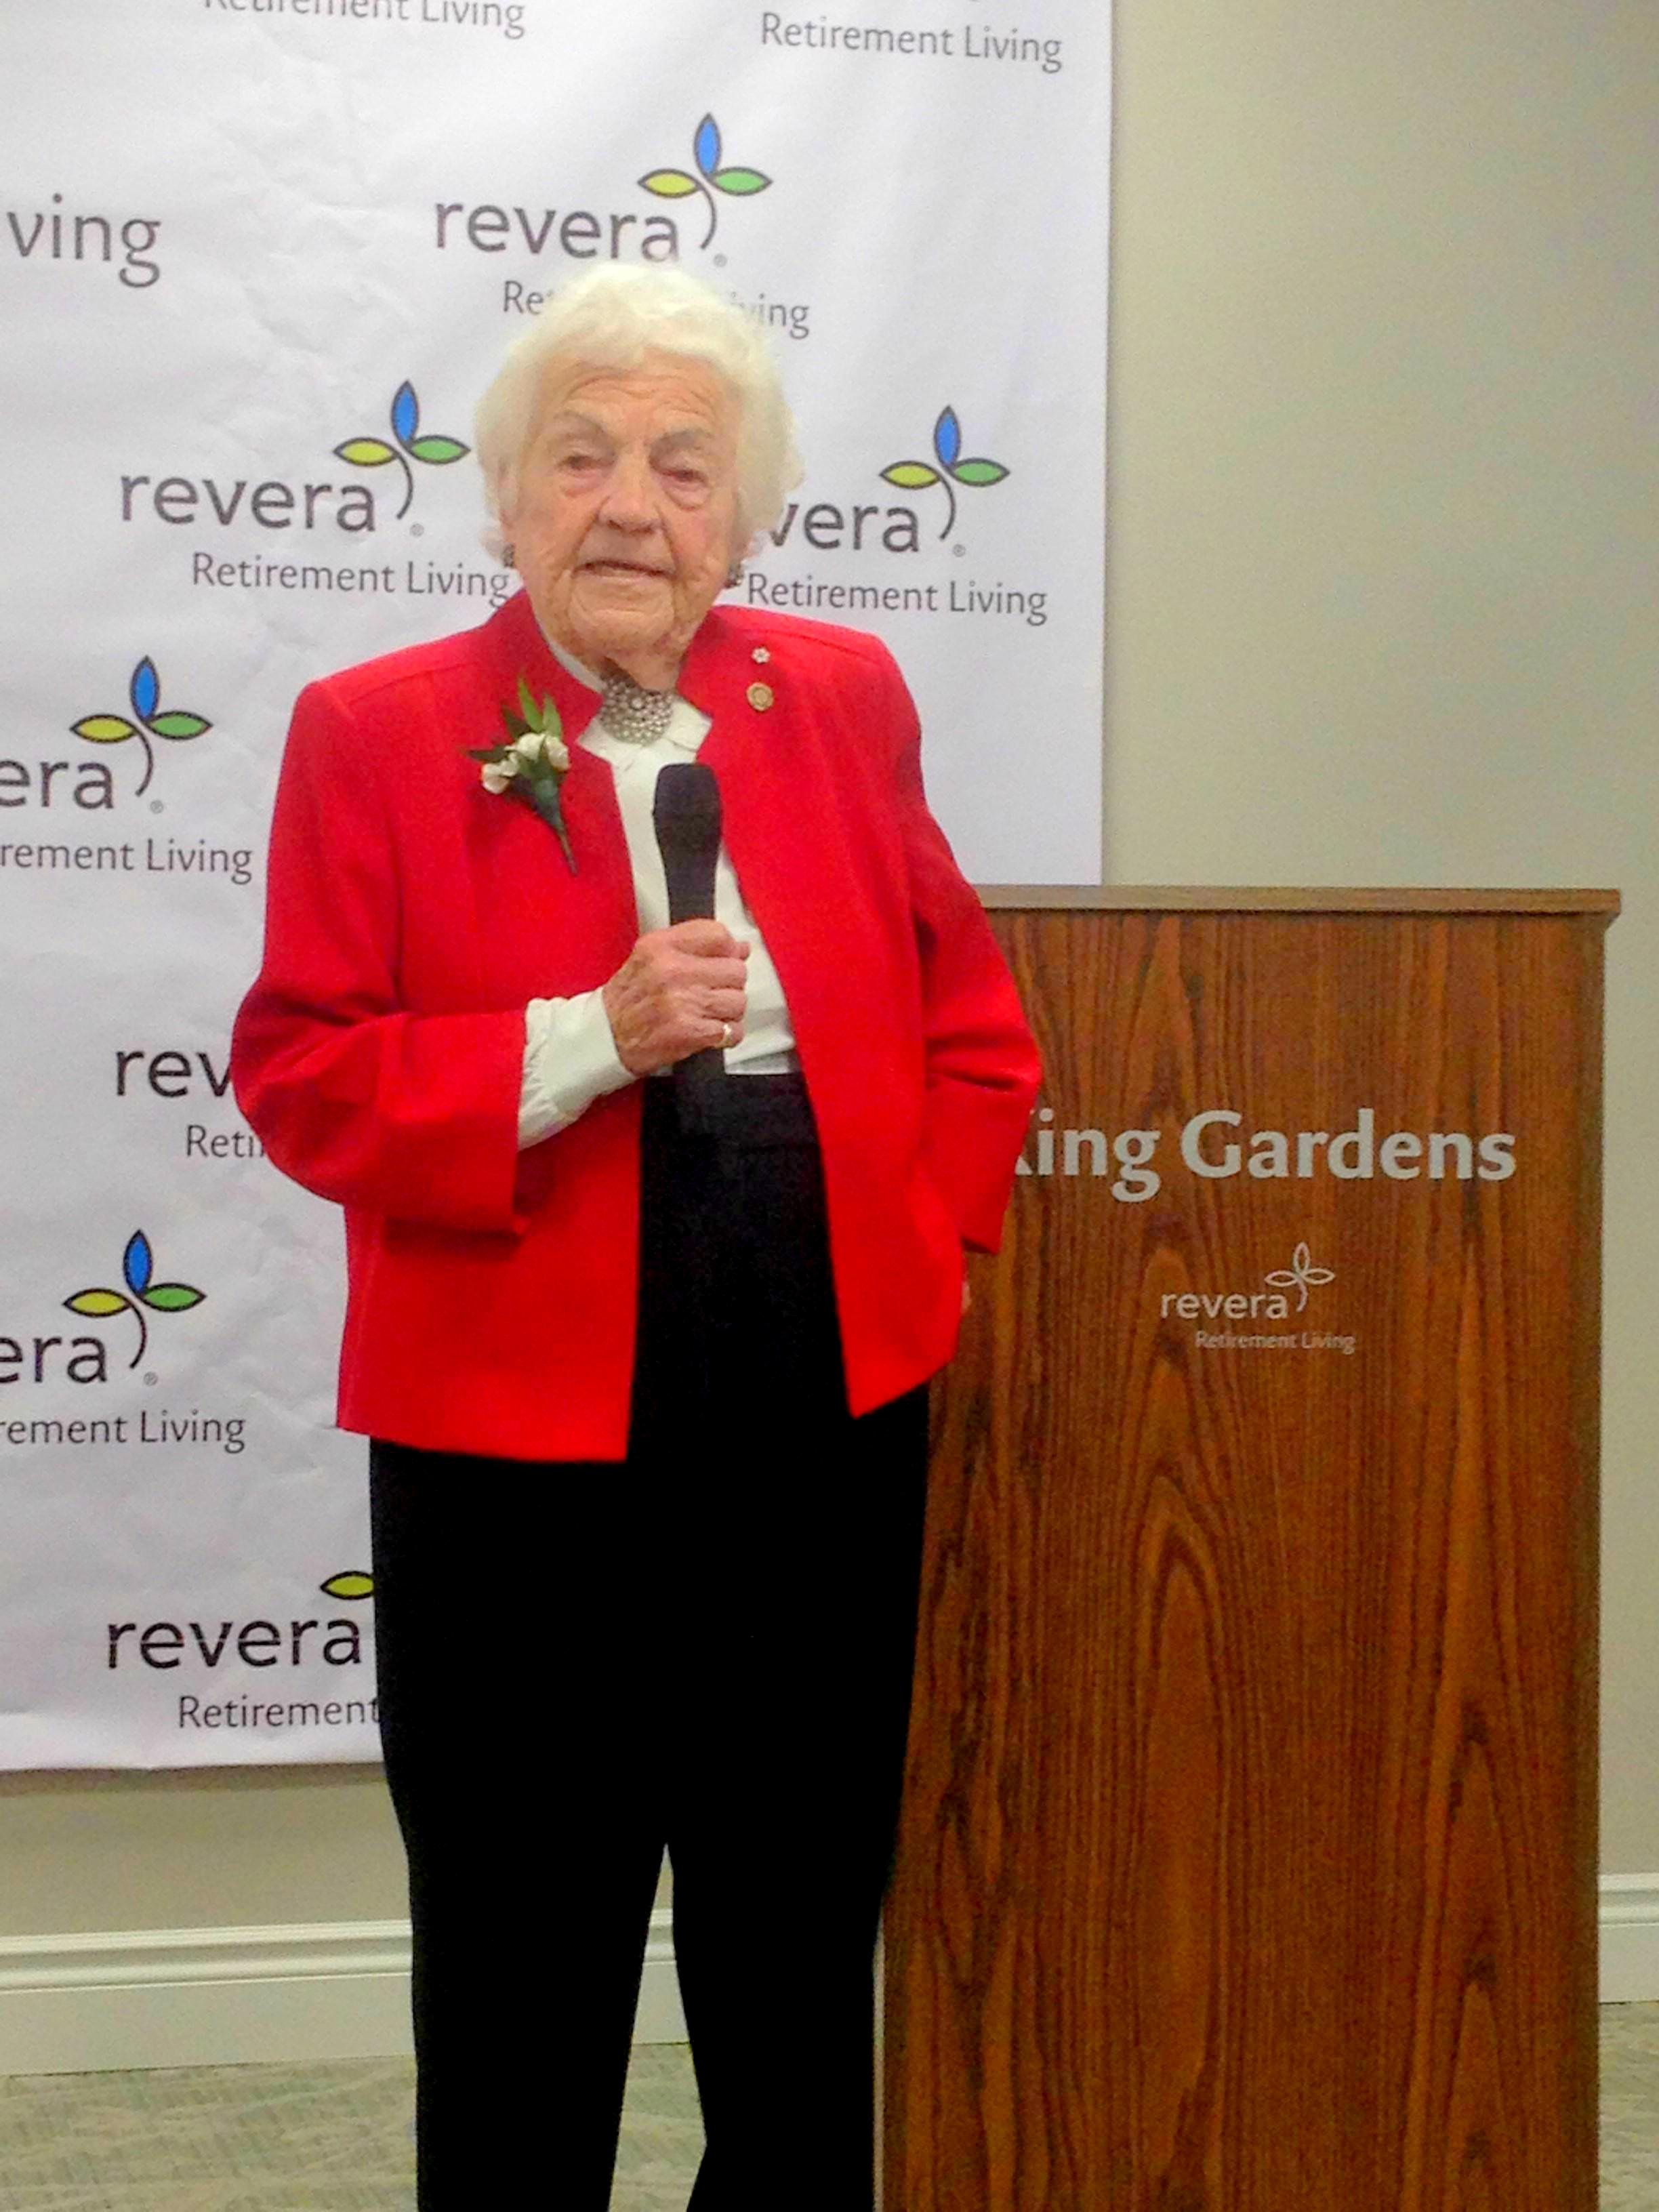 Hazel McCallion at Grand Reopening of Revera King Gardens, 5 April 2018. Photo credits: Alex Gregory, Peel Daily News